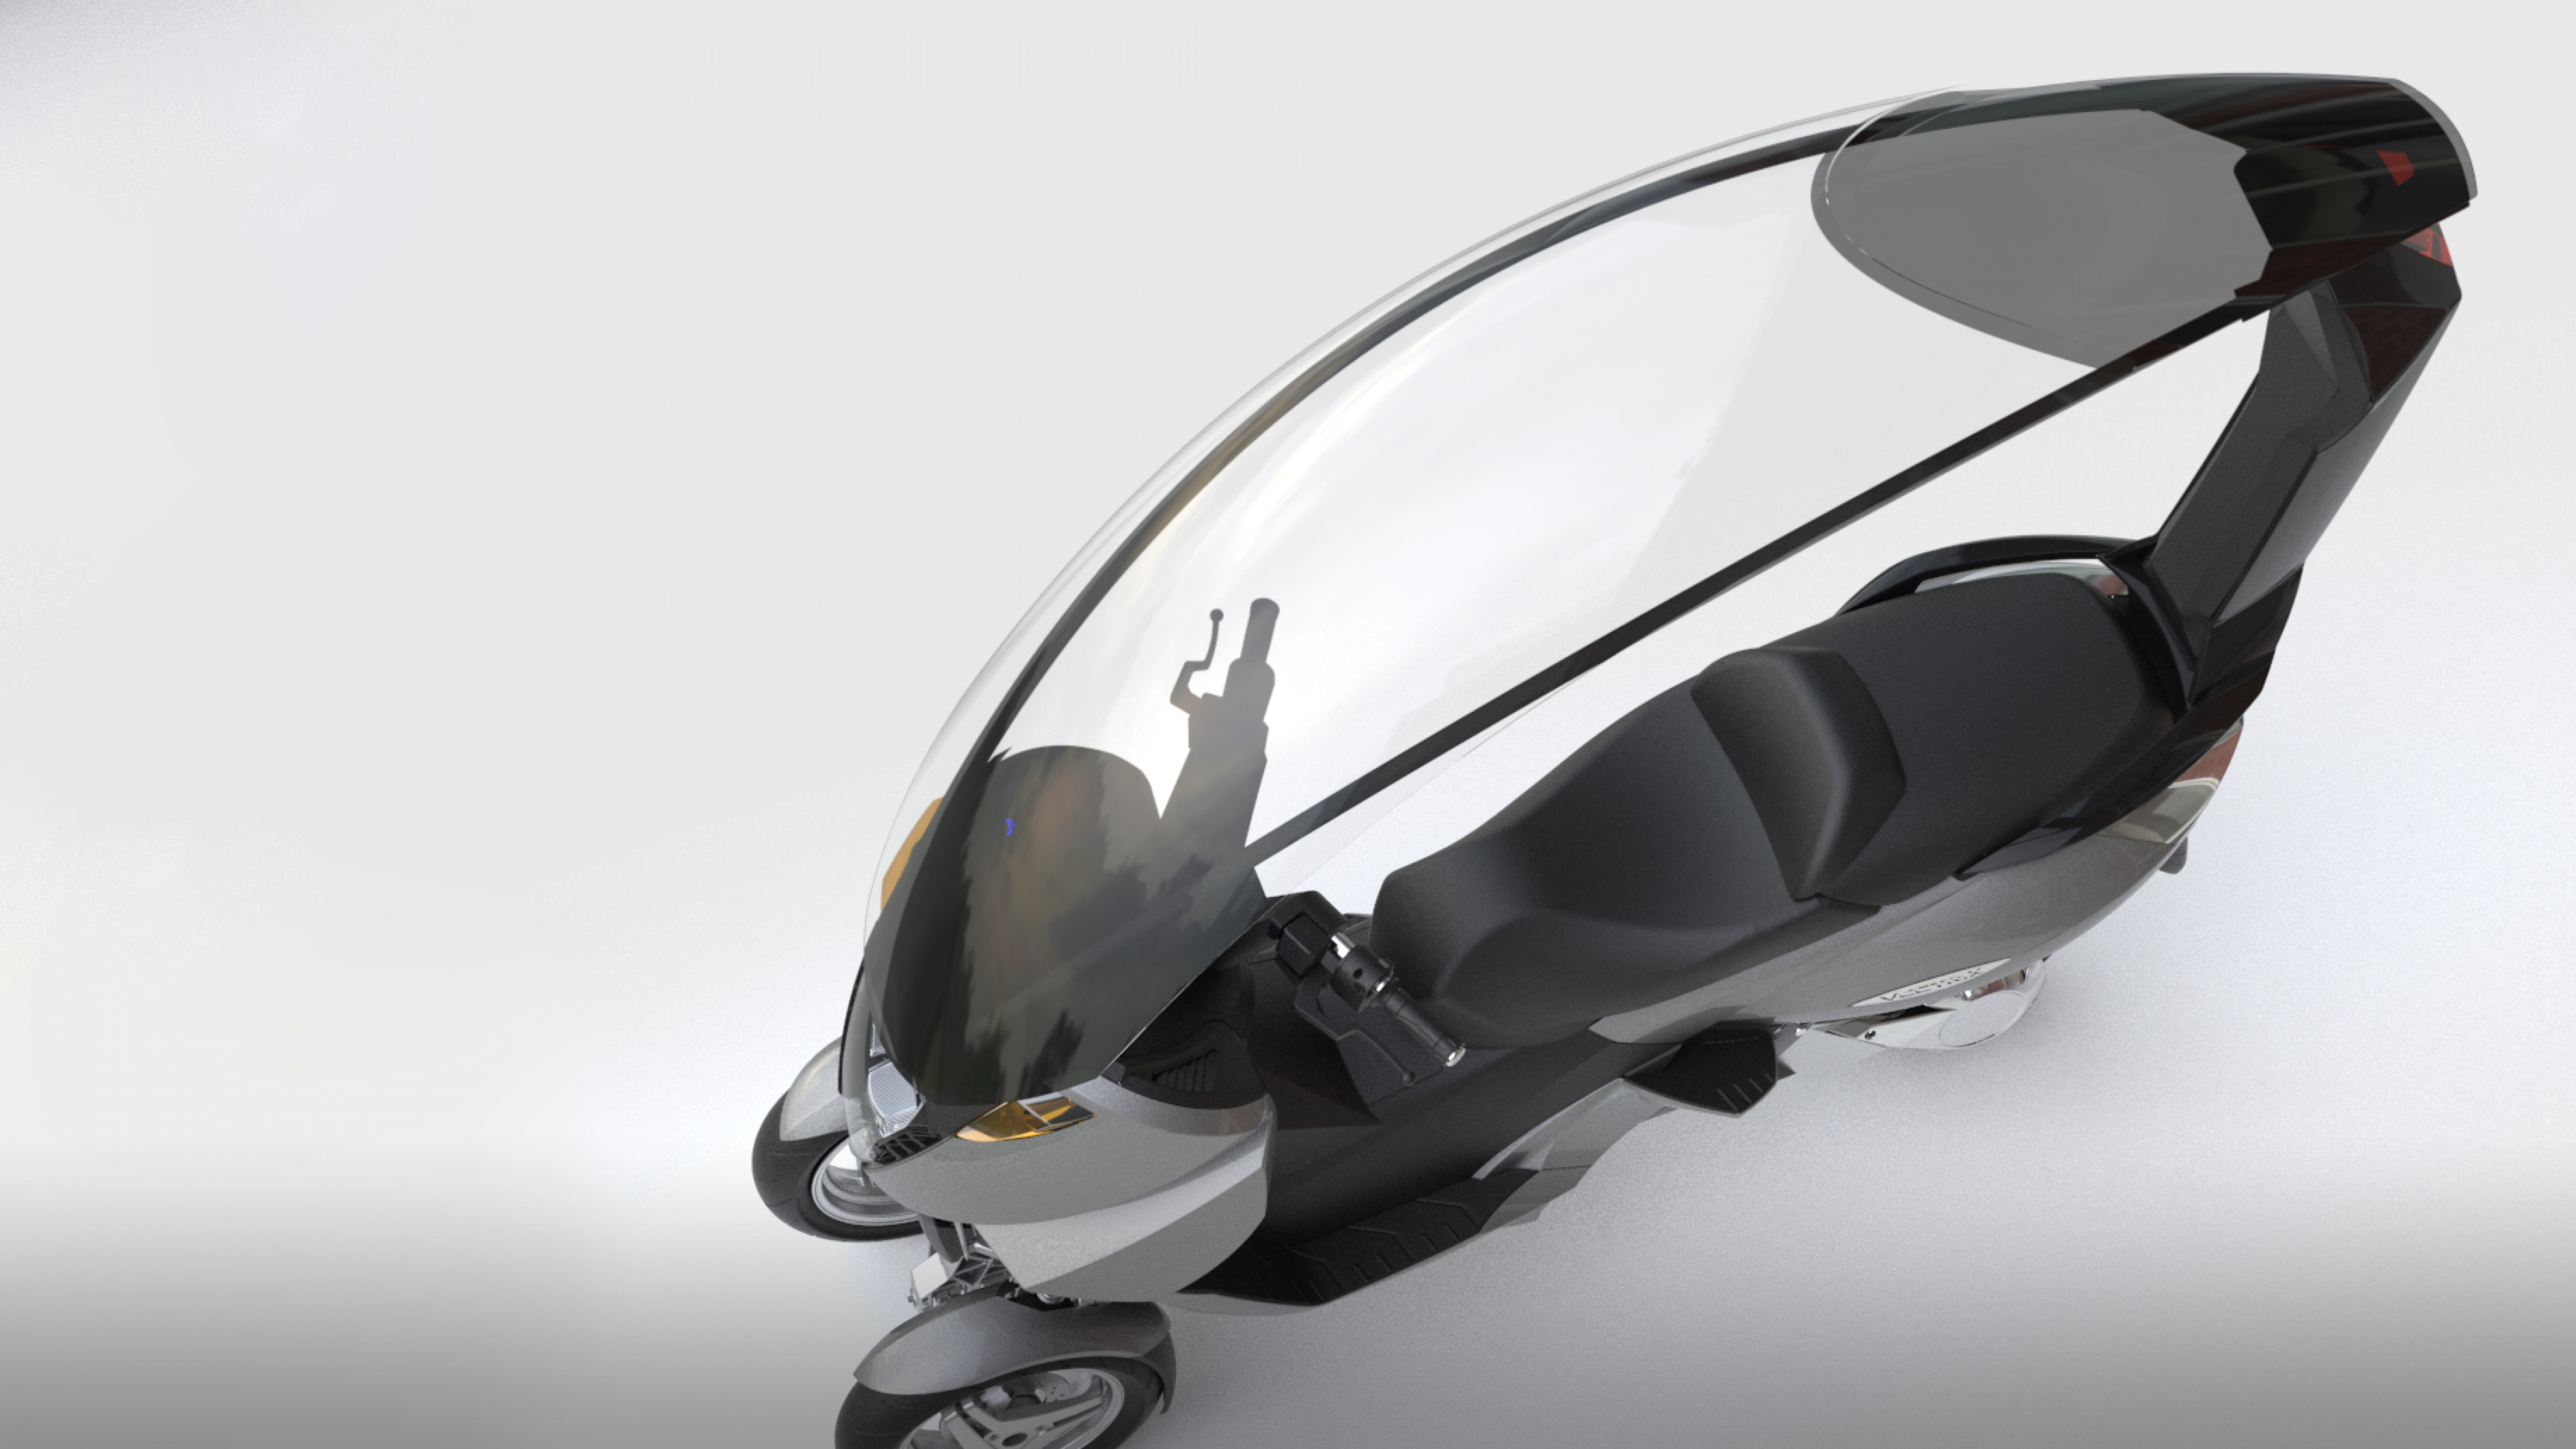 Vectrix Electric Scooter Canopy | ROBRADY design